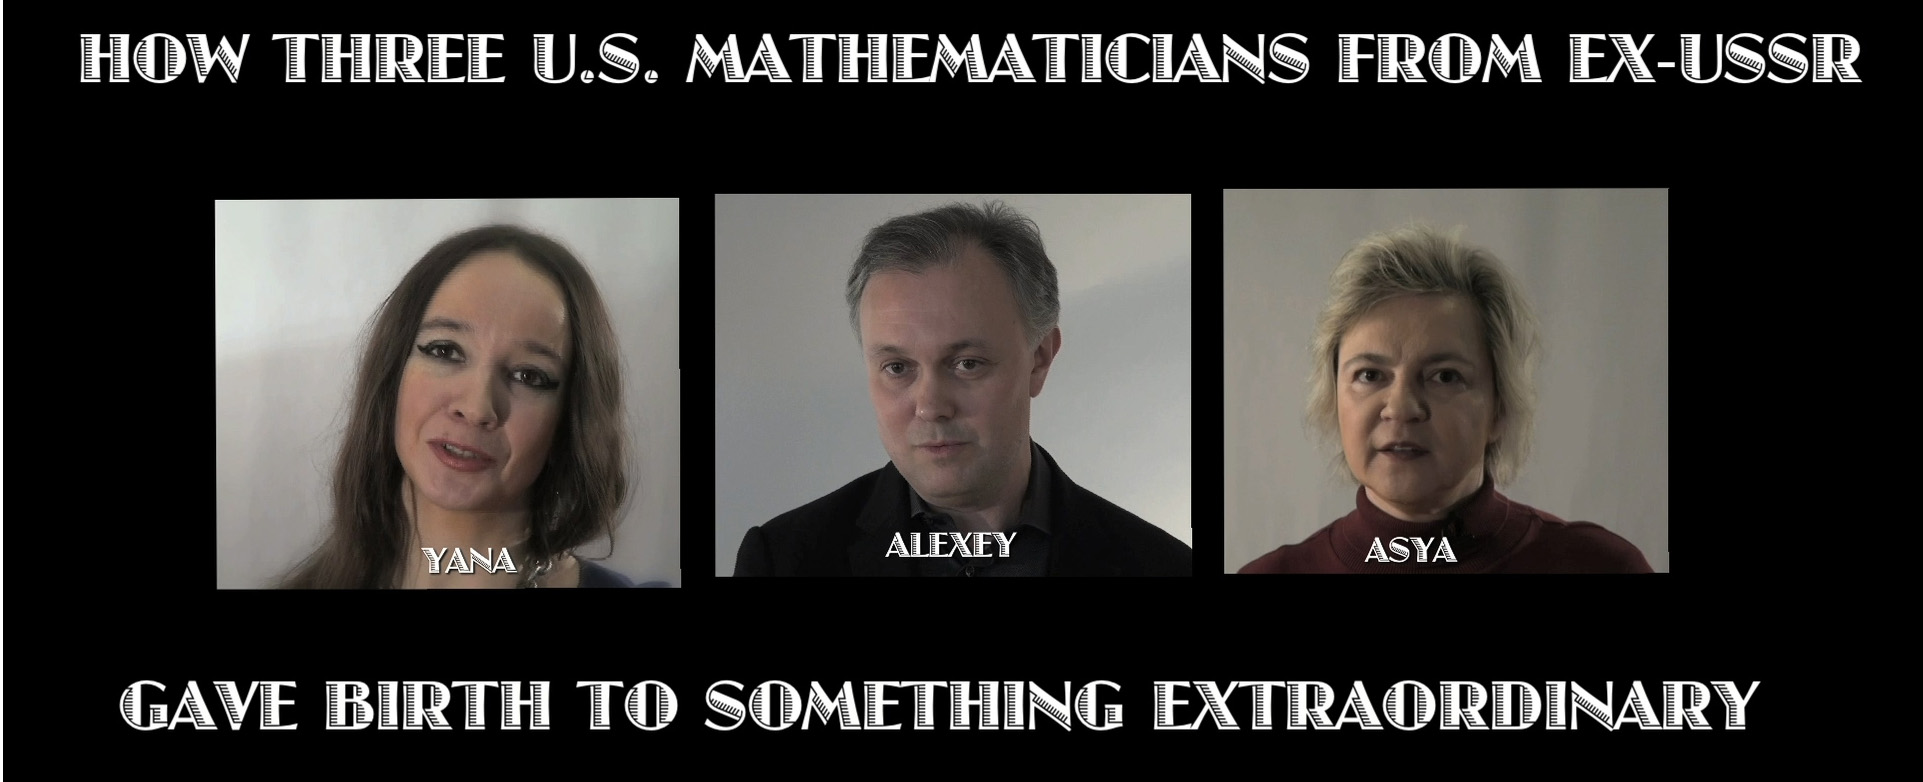 Expressions of artistic values proved in 'Married to Math'